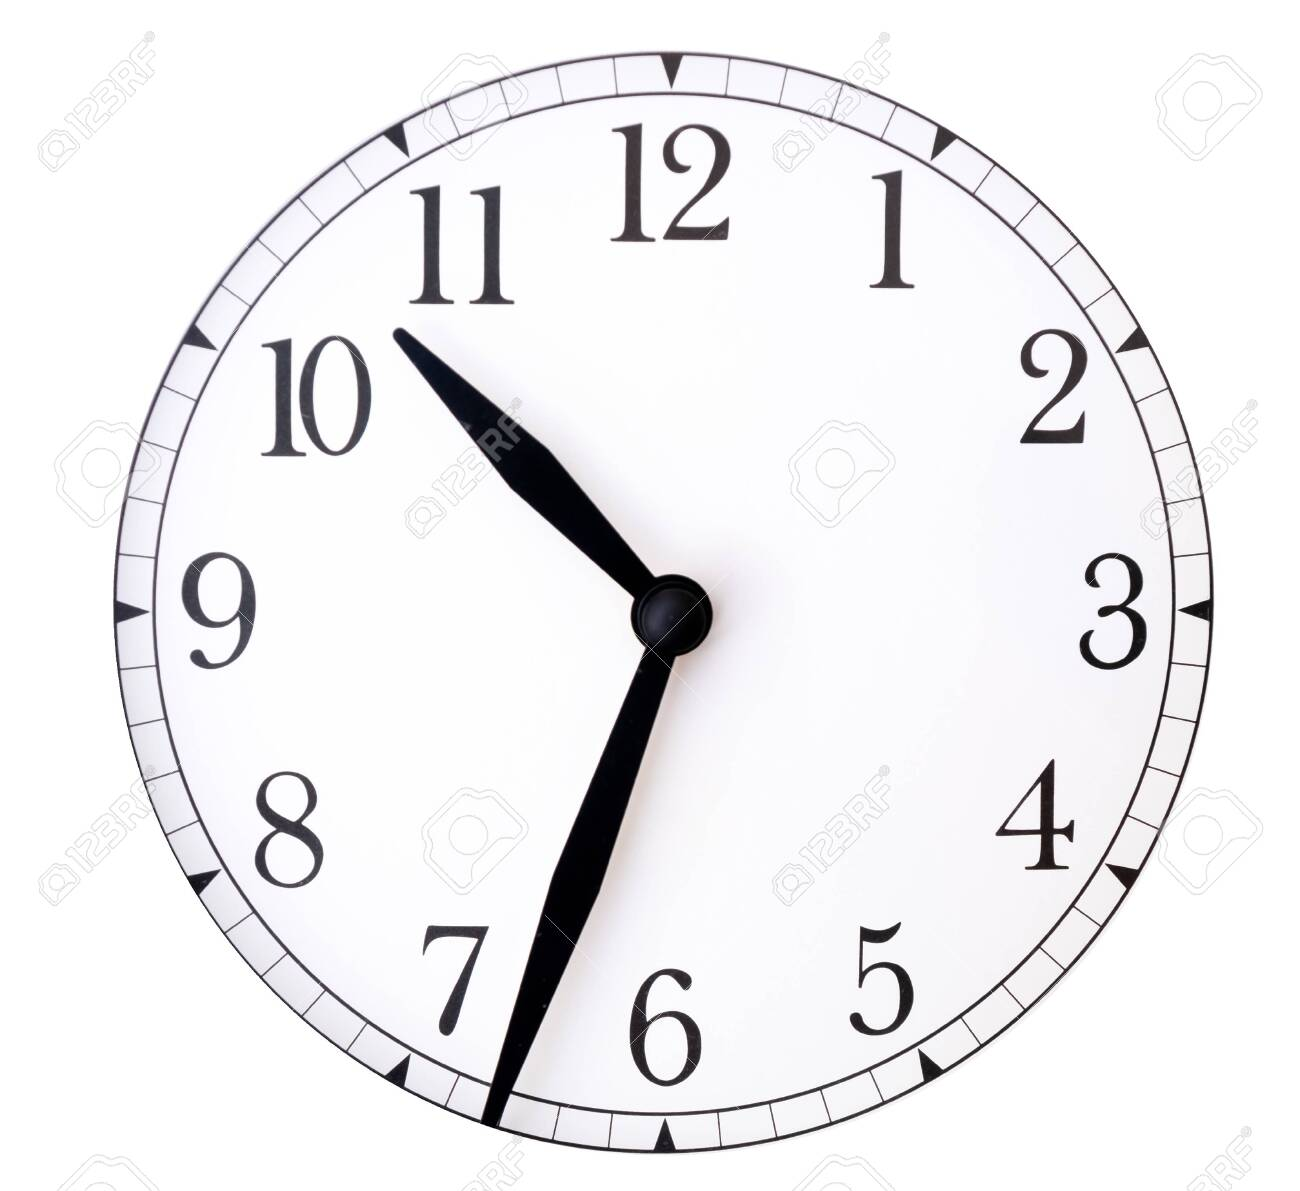 image relating to Printable Clock Face With Hands identified as clock experience and arms upon white historical past/ Blank clock facial area with..